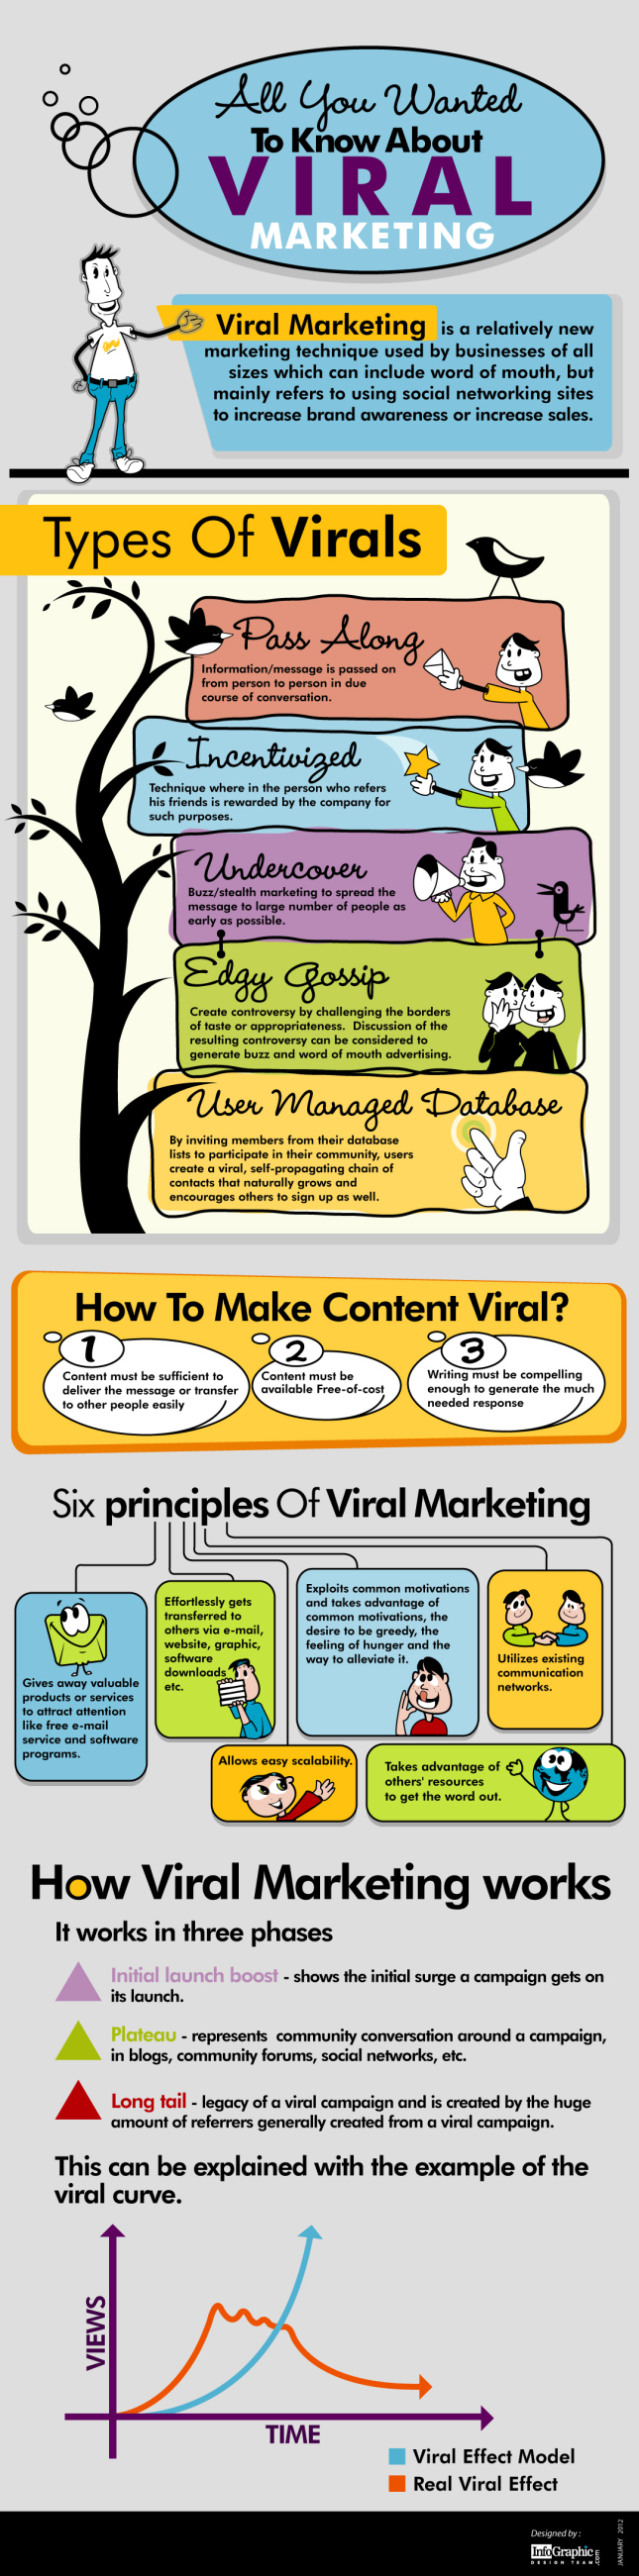 6 Principles of Viral Marketing image infographic all you wanted to know about viral marketing 2